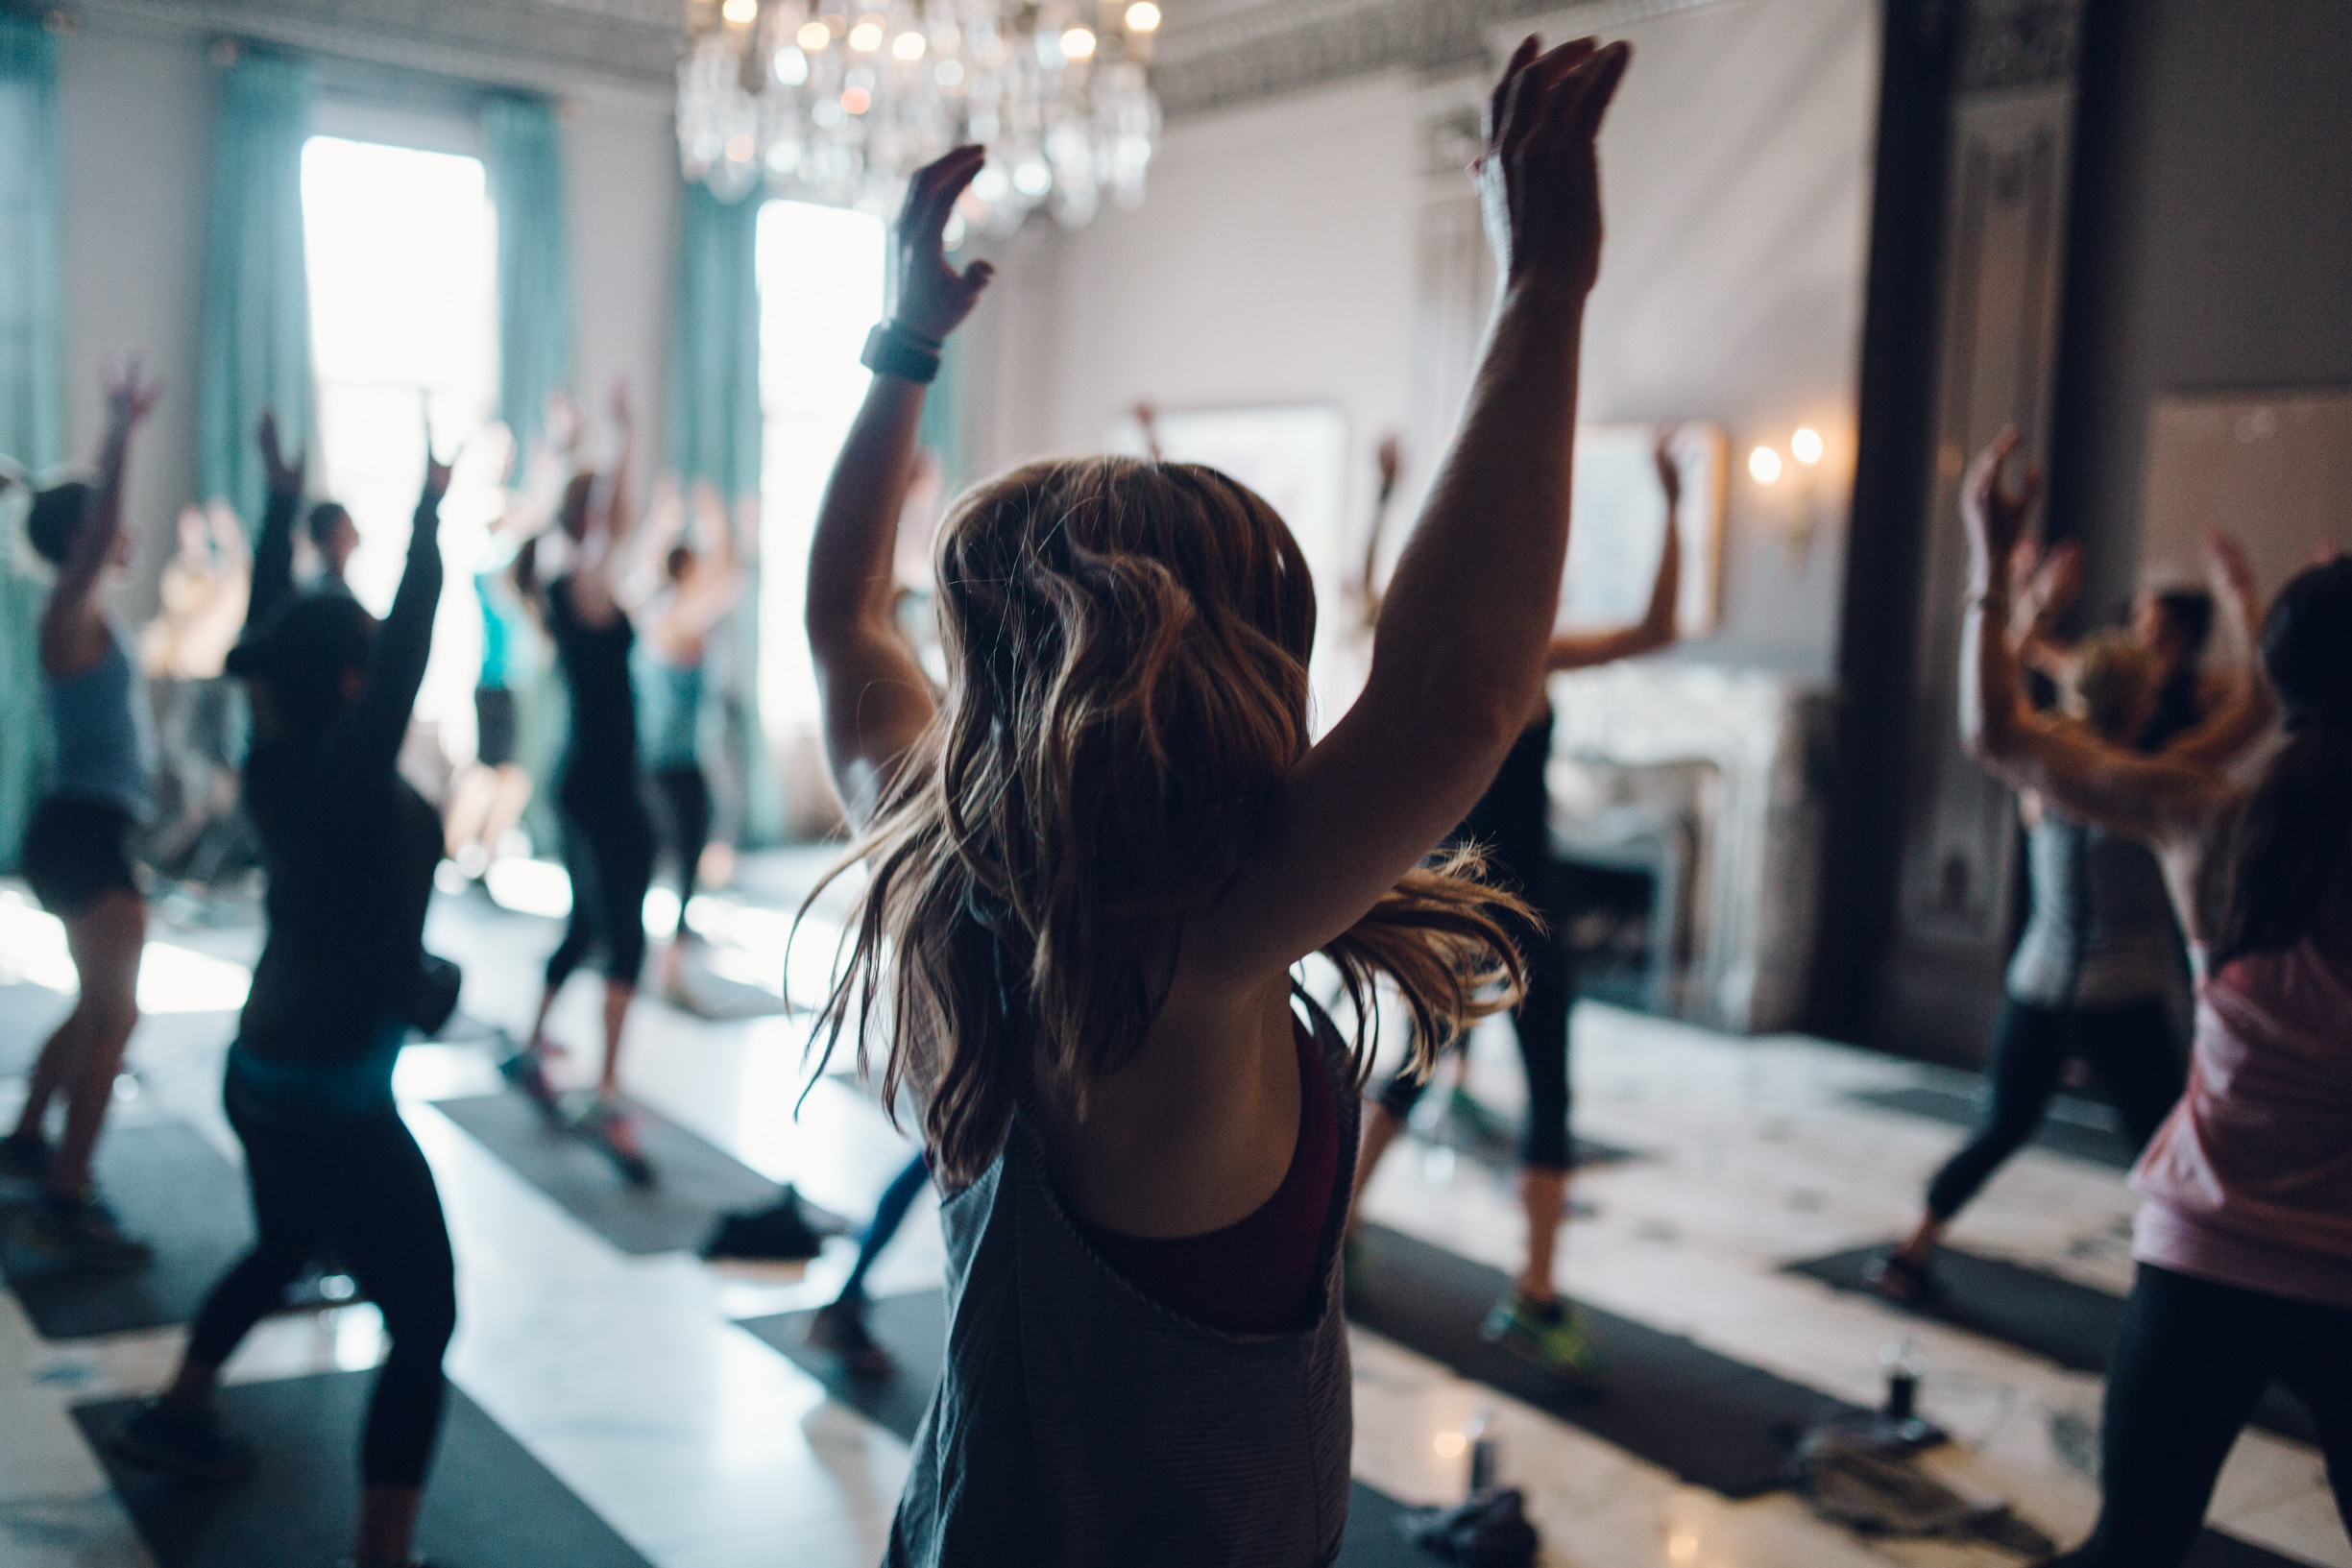 Join us May 7, as we leave the studio to convert the Martine Chaisson Gallery into a morning of wellness. We will start our morning with a workout led by our founder Nicole Williamson followed by a Magpie Cafe curated brunch!